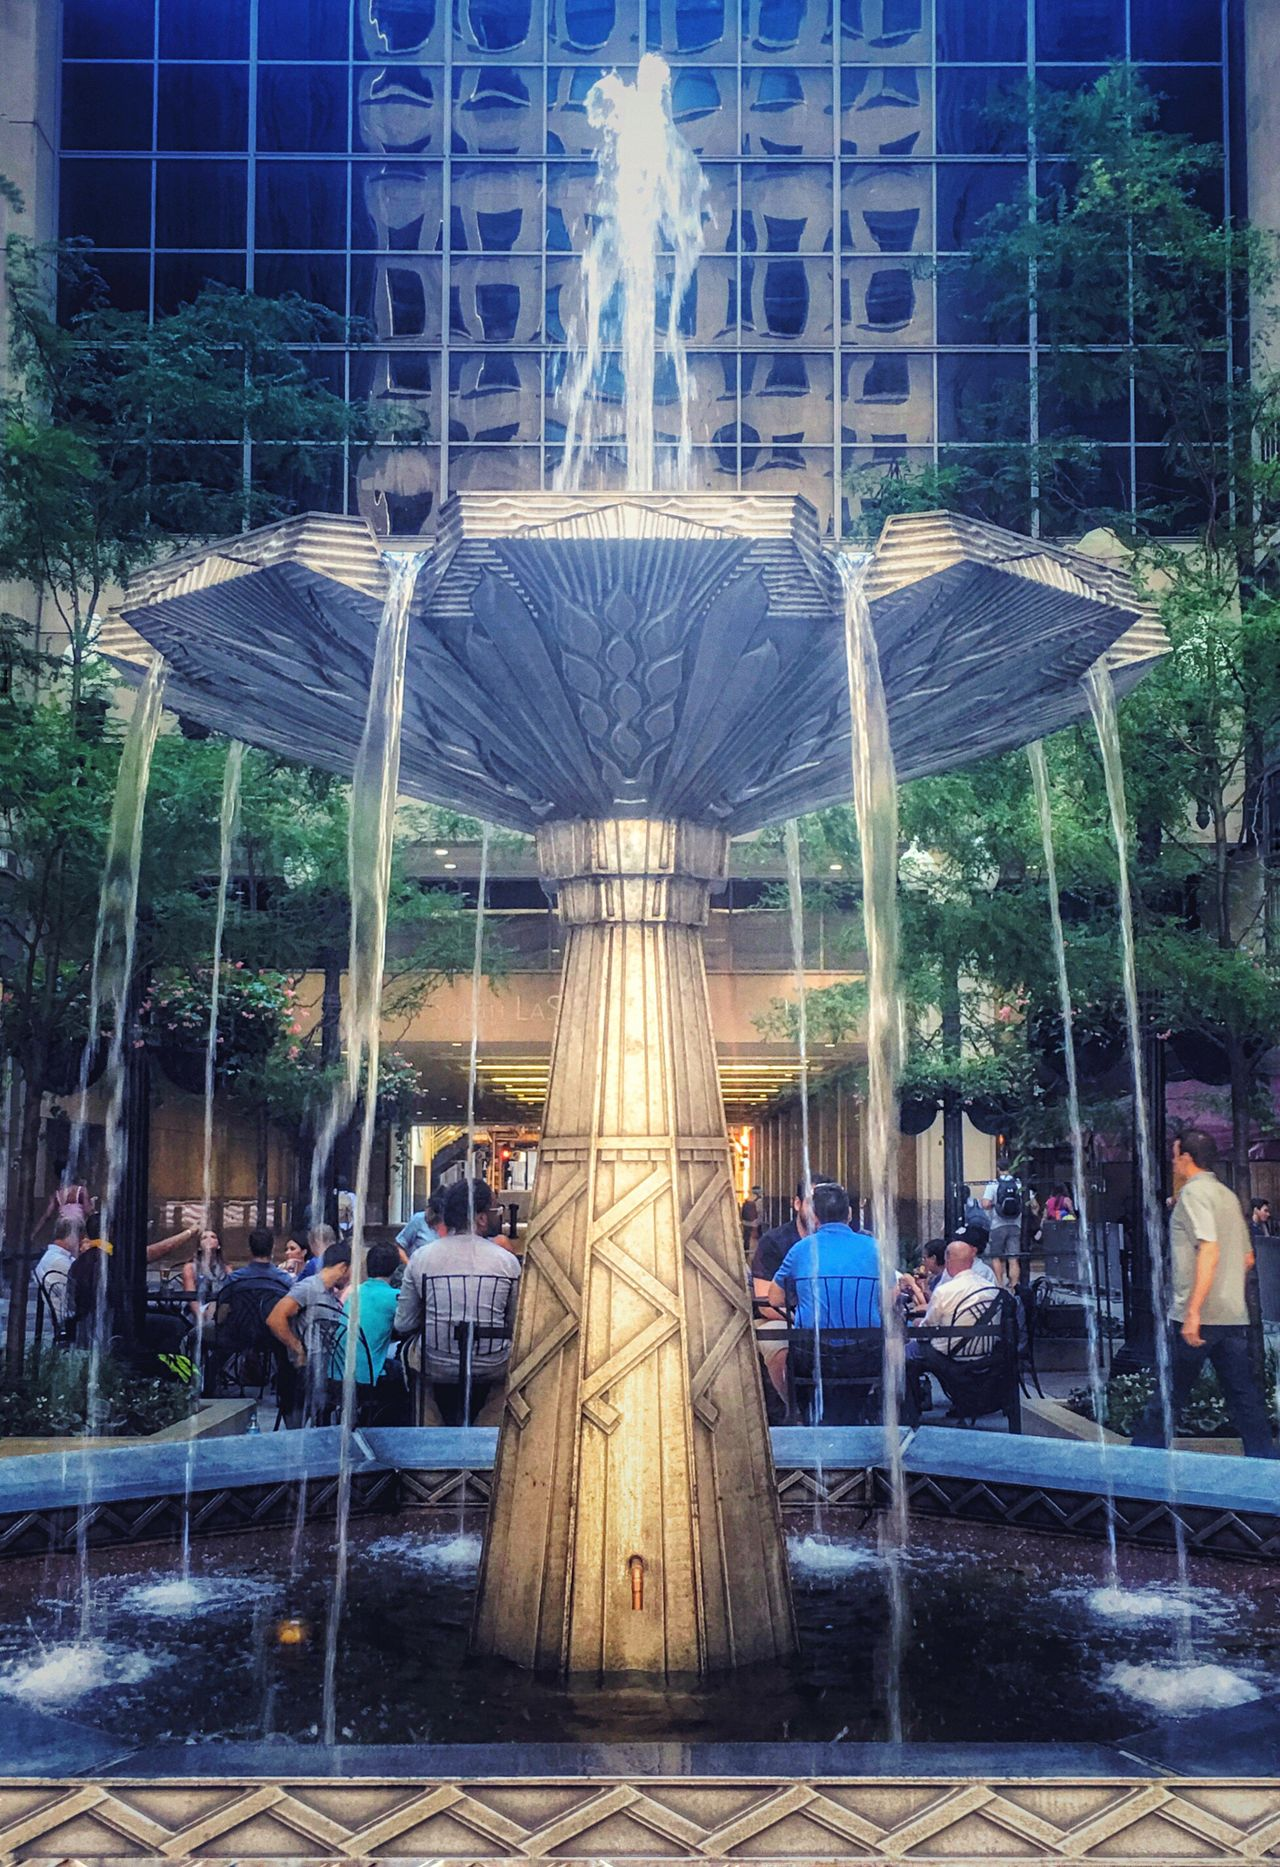 Friday Night Fun at the Chicago Board Of Trade Building Chicago Chicago Loop Fountain Classic Art Deco Design Cocktails Relax Celebrate The Weekend! Celebrate Individuality Celebrate Success Summer EyeEm Gallery EyeEmBestPics Eyeemphotography Eyeem Market Eyeemurban Architecture Amateurphotography Iphoneonly